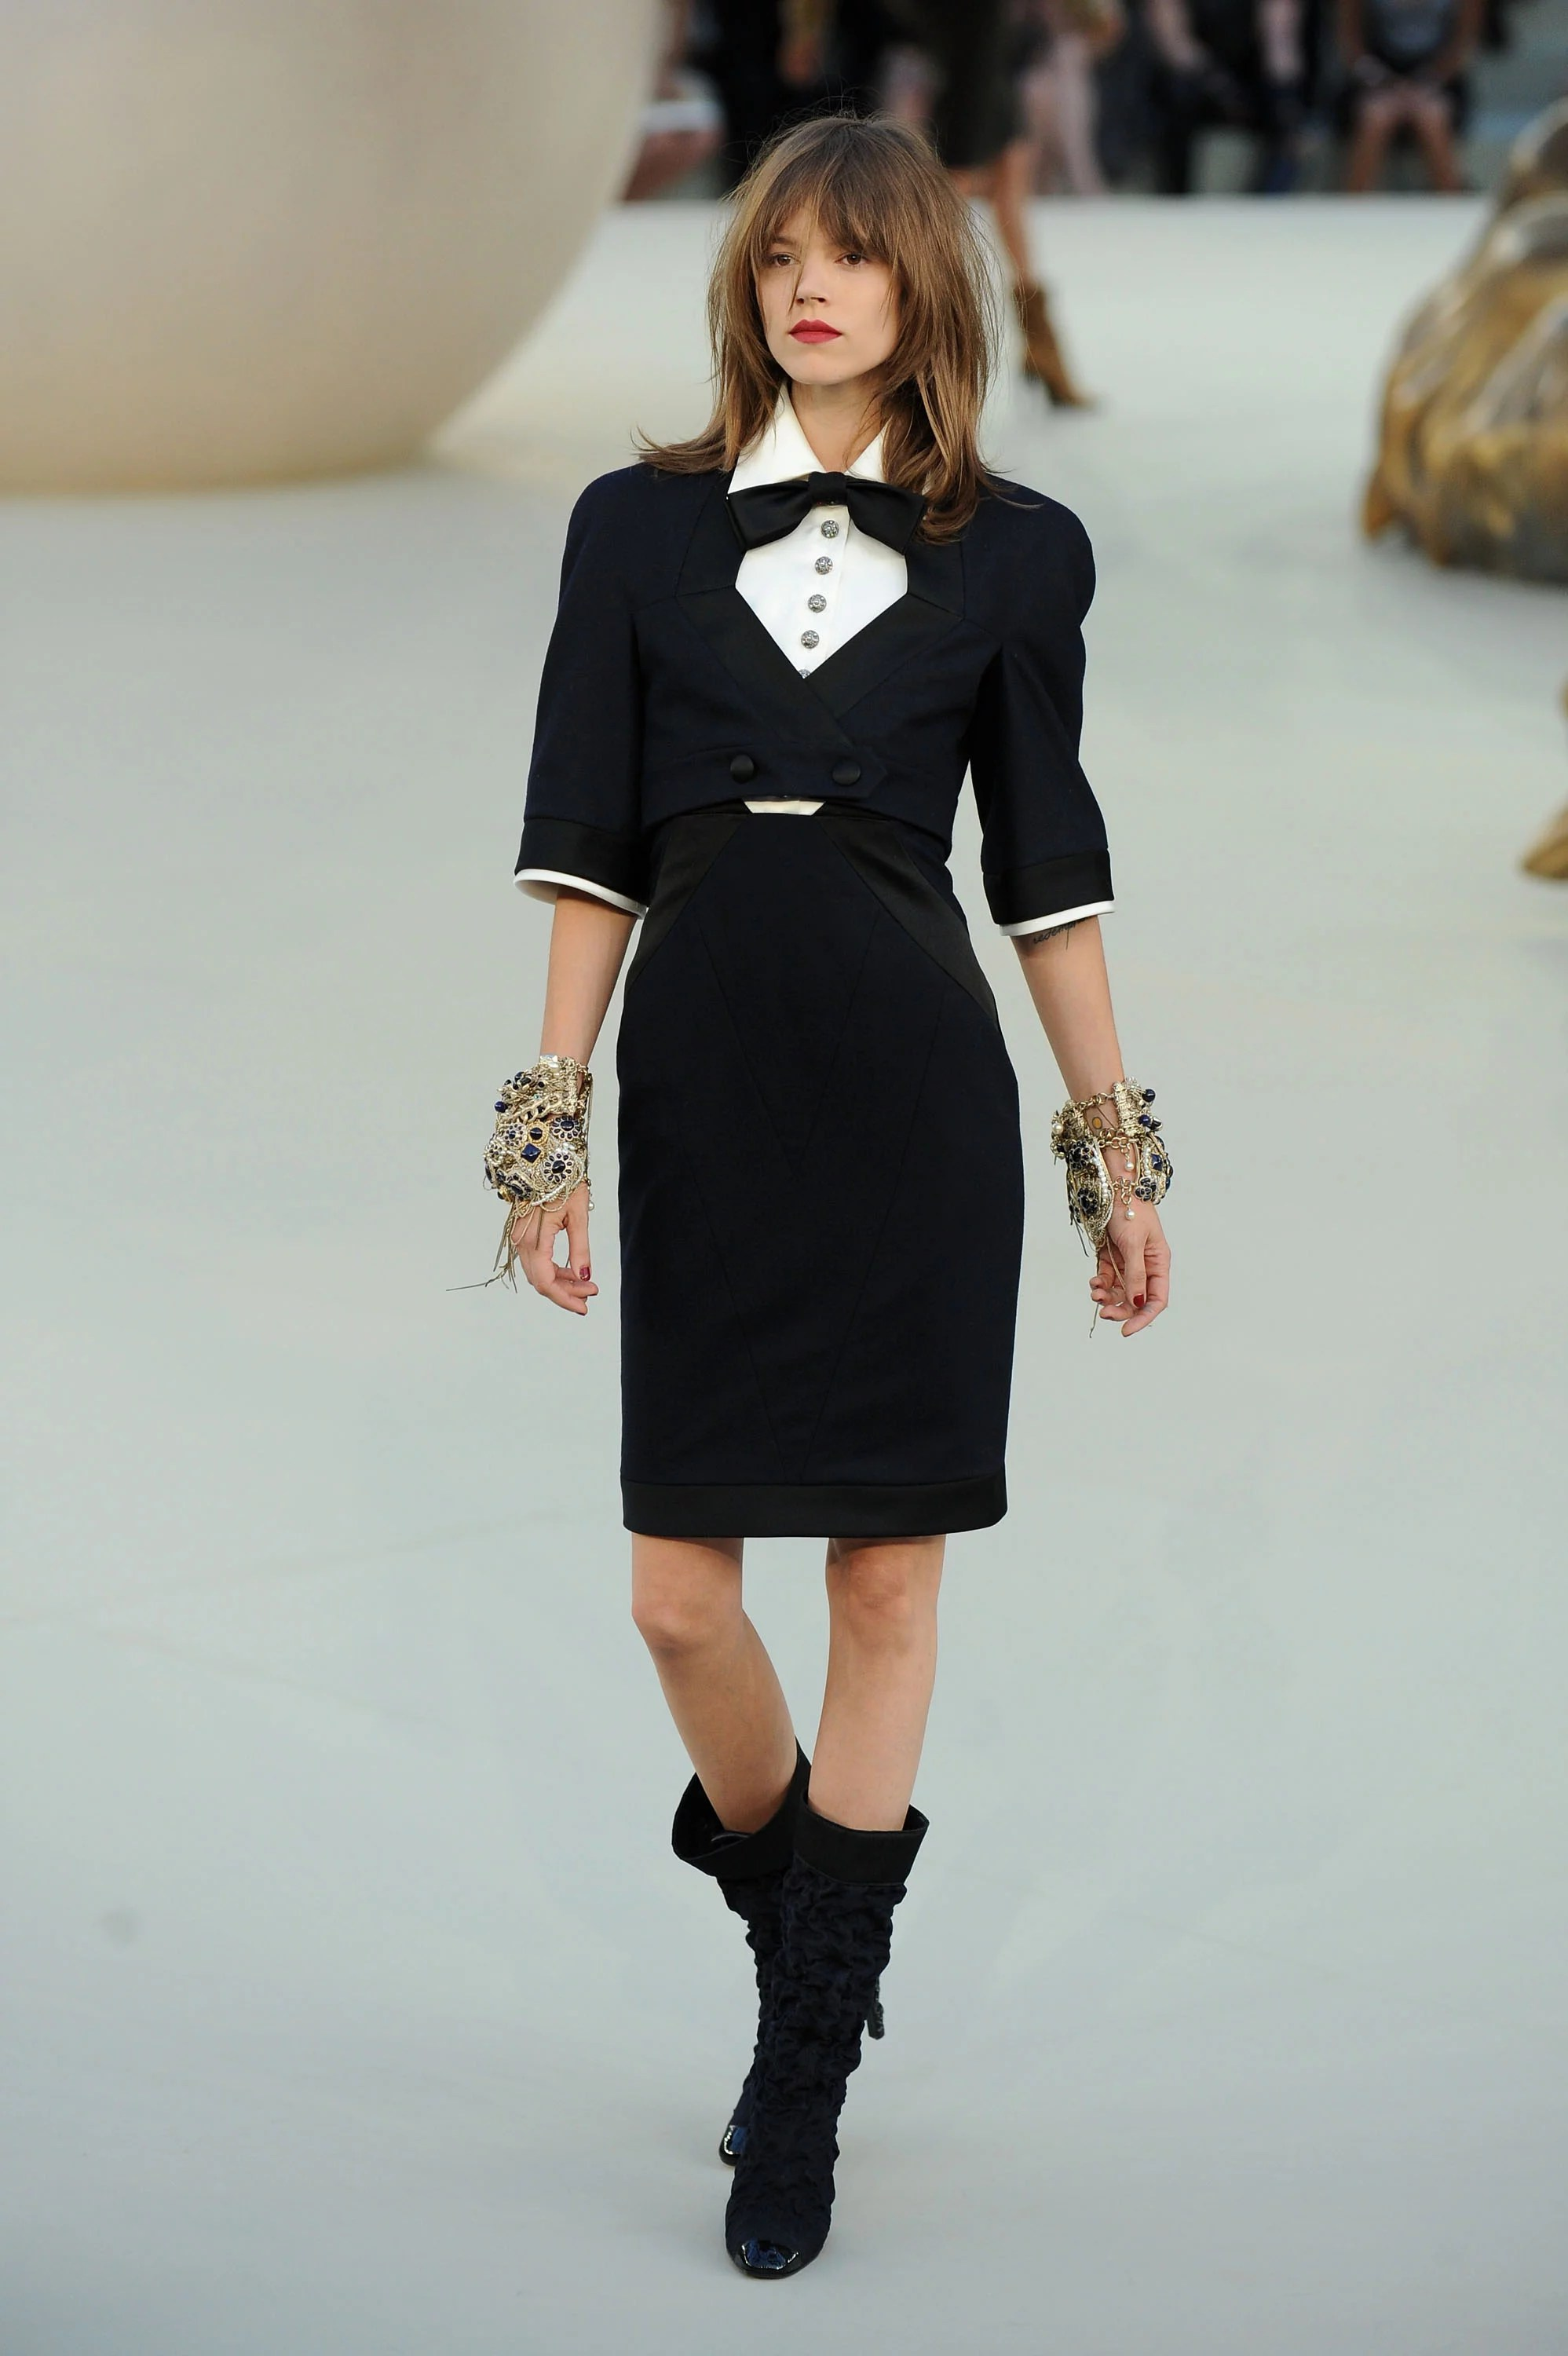 Photos Of The 2010 Chanel Autumn Haute Couture Collection